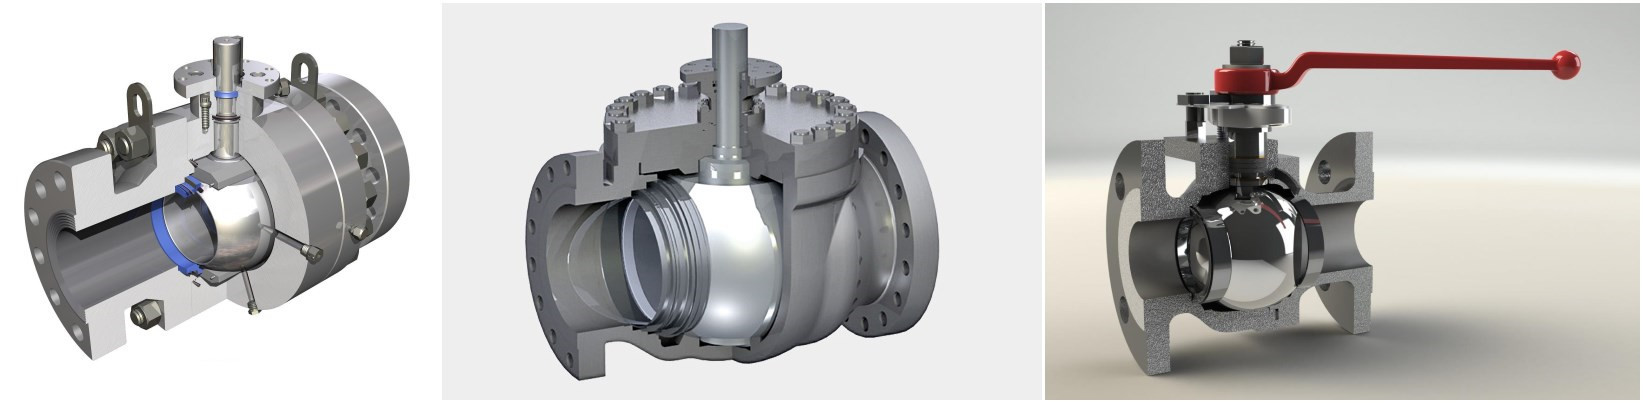 Spherical lathe processing ball valve for sphere surface